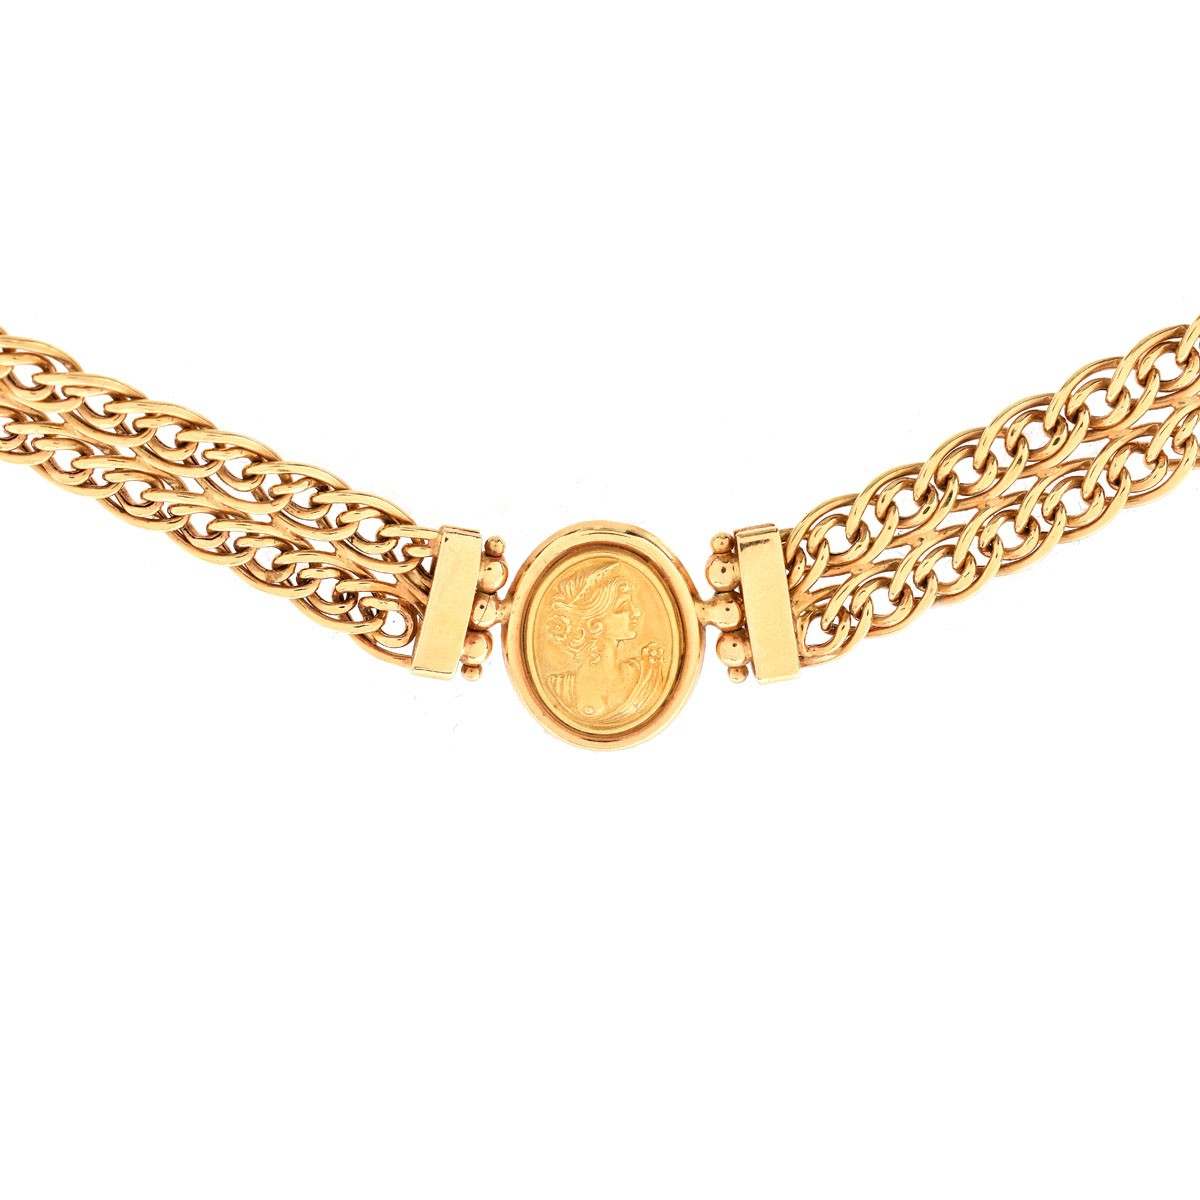 Vintage Italian 18K Gold Necklace